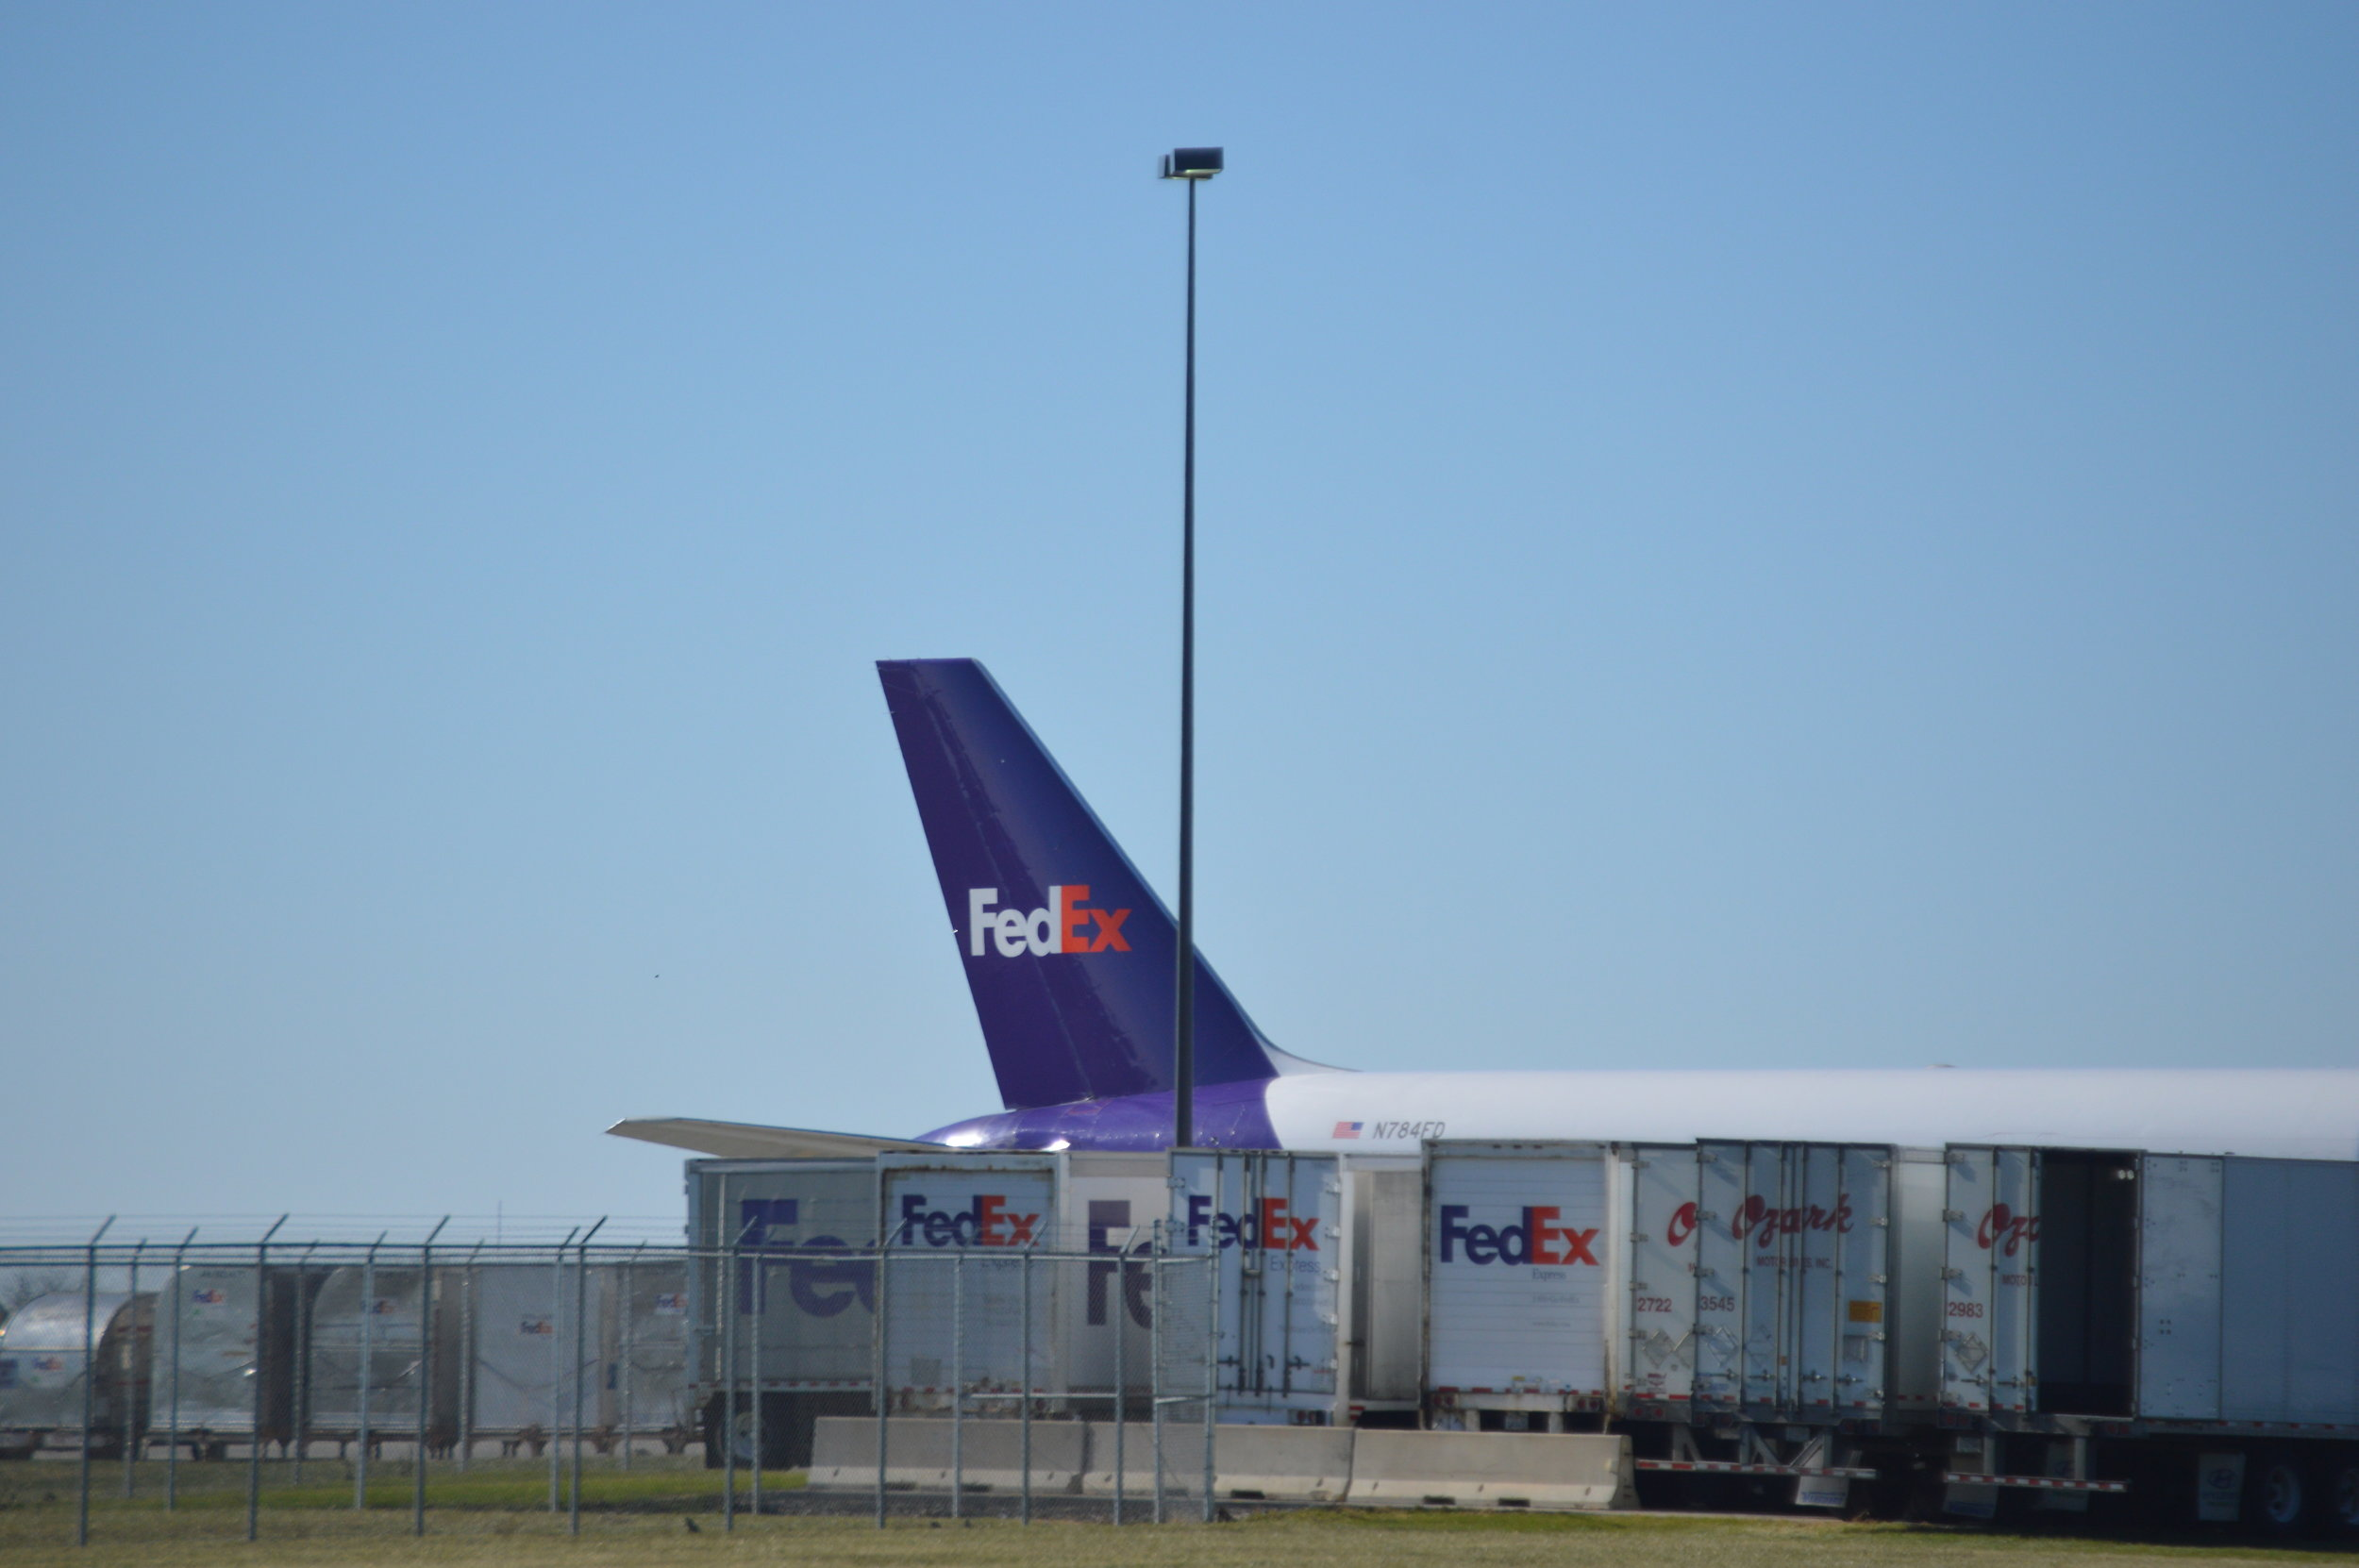 FedEx increased operations at the airport in 2017 -